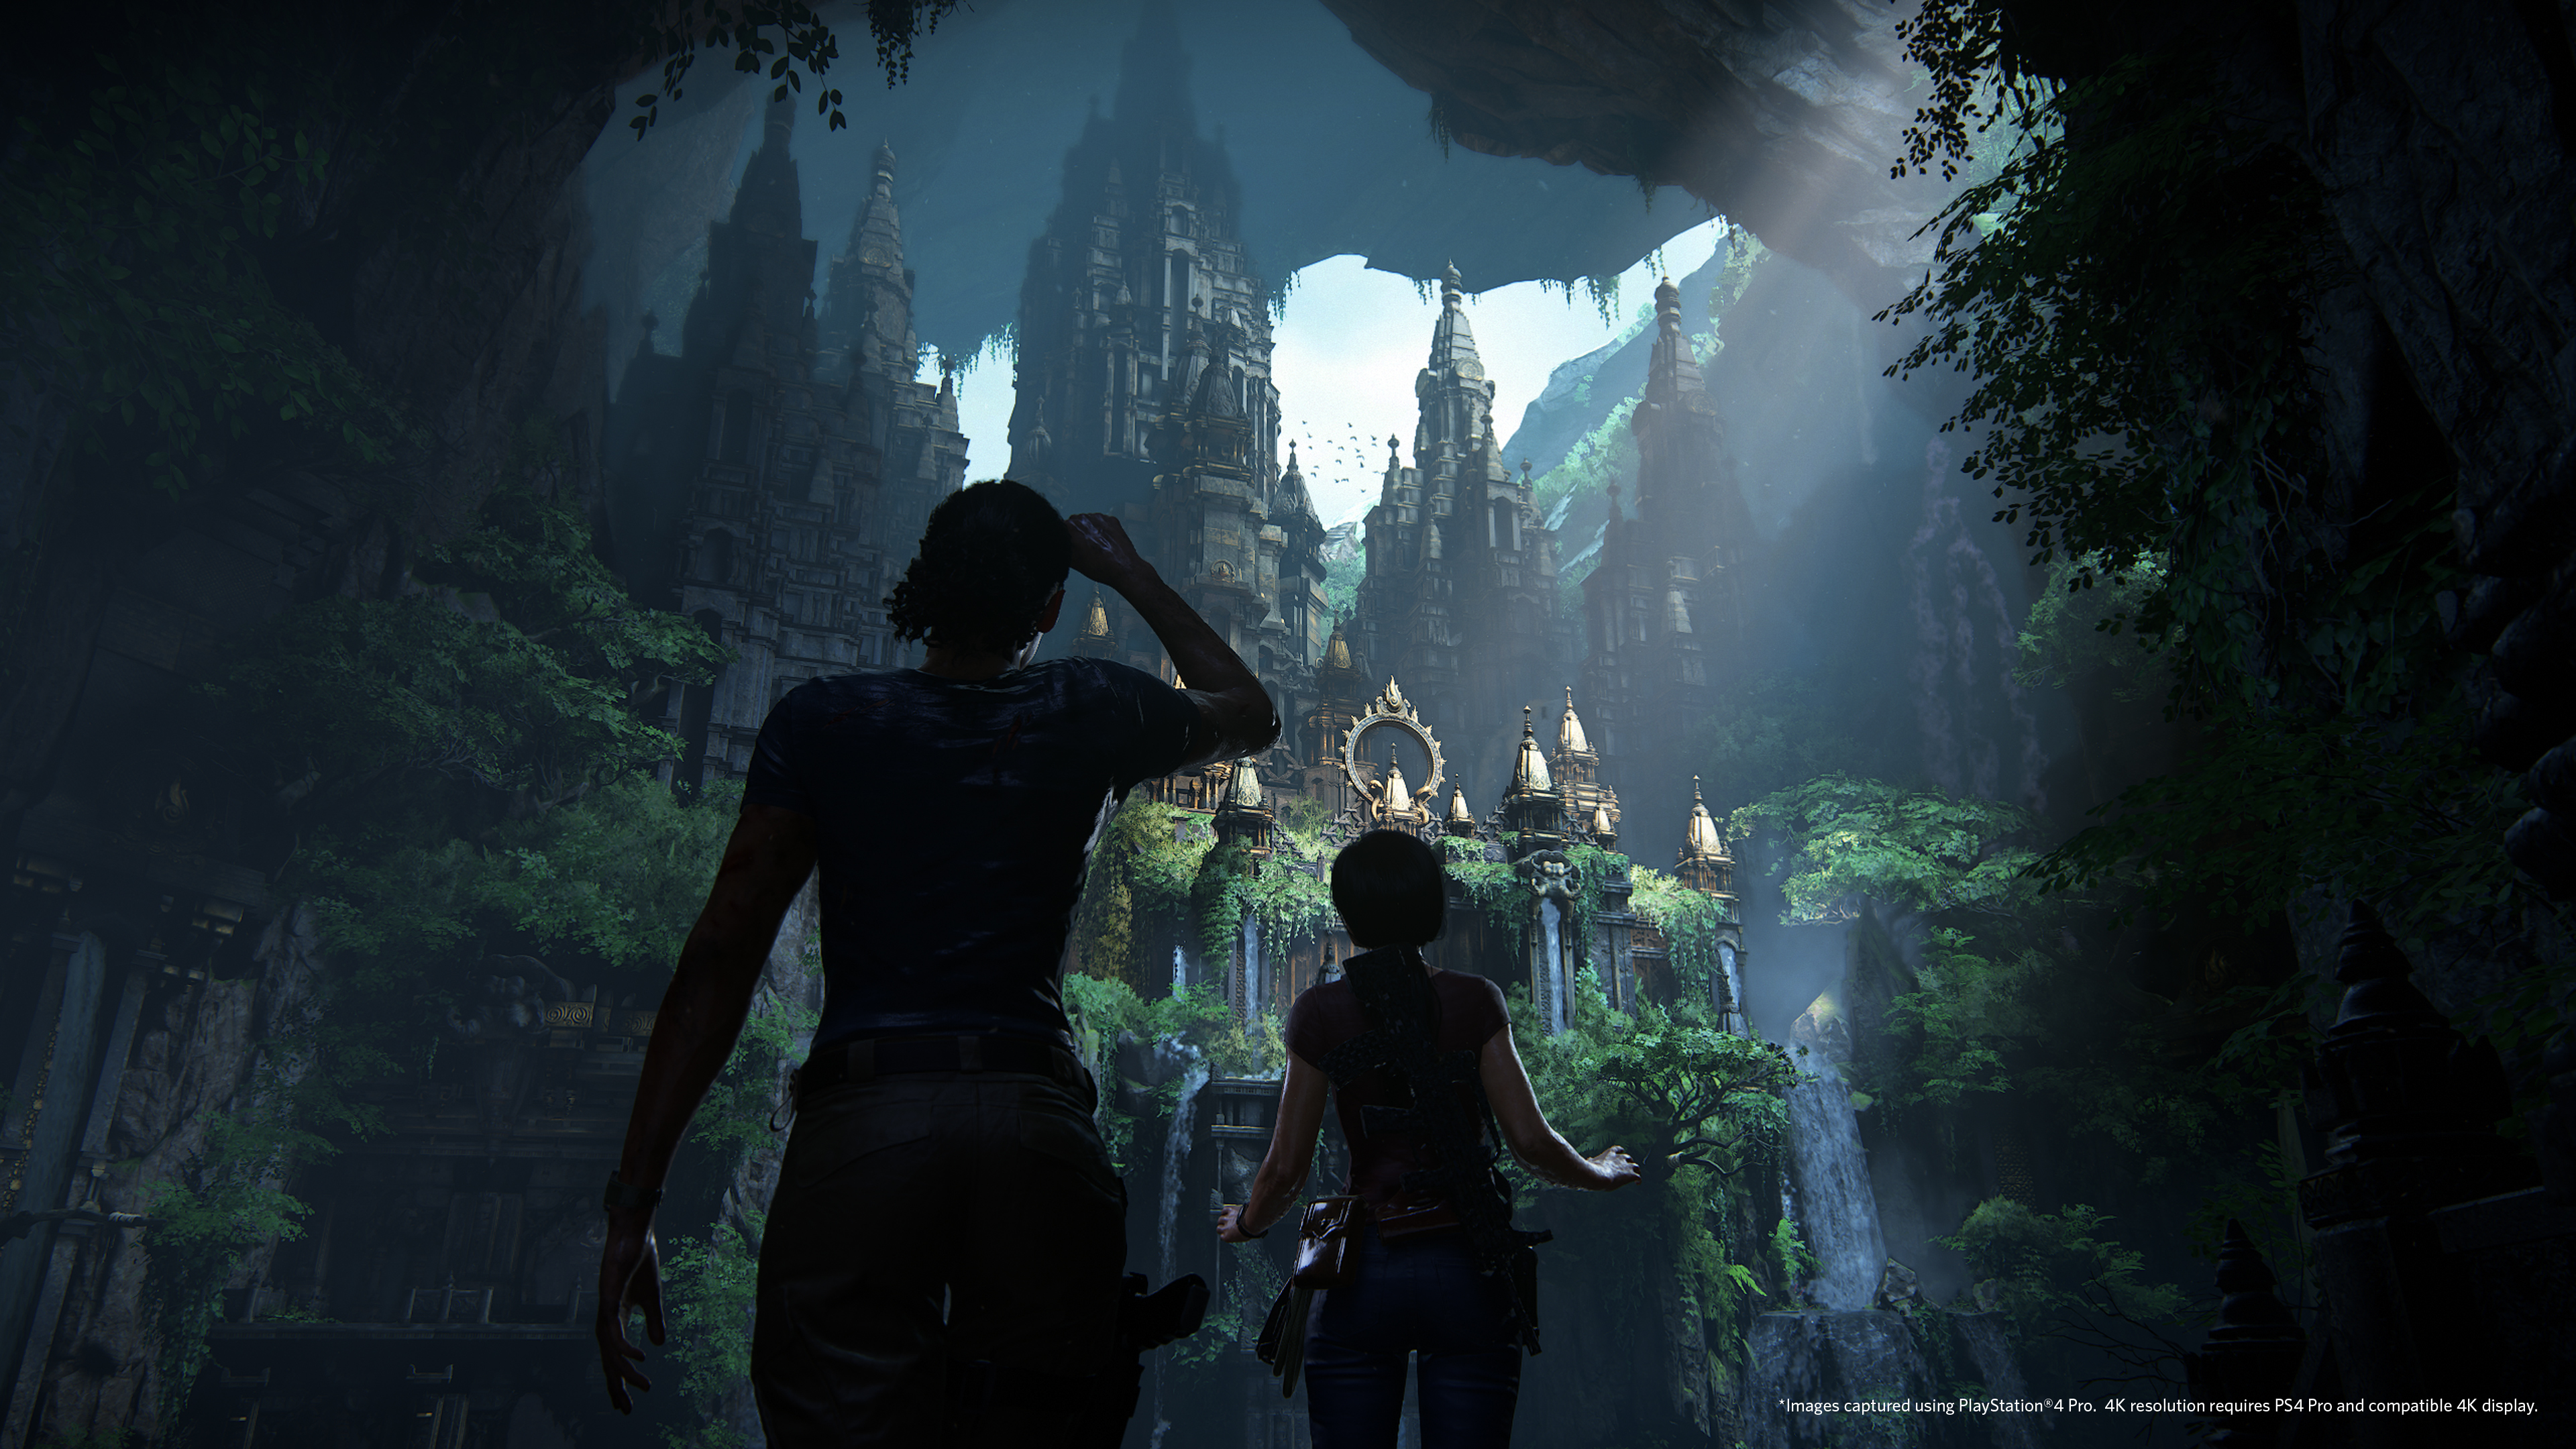 Watch the New E3 Story Trailer for Uncharted: The Lost Legacy